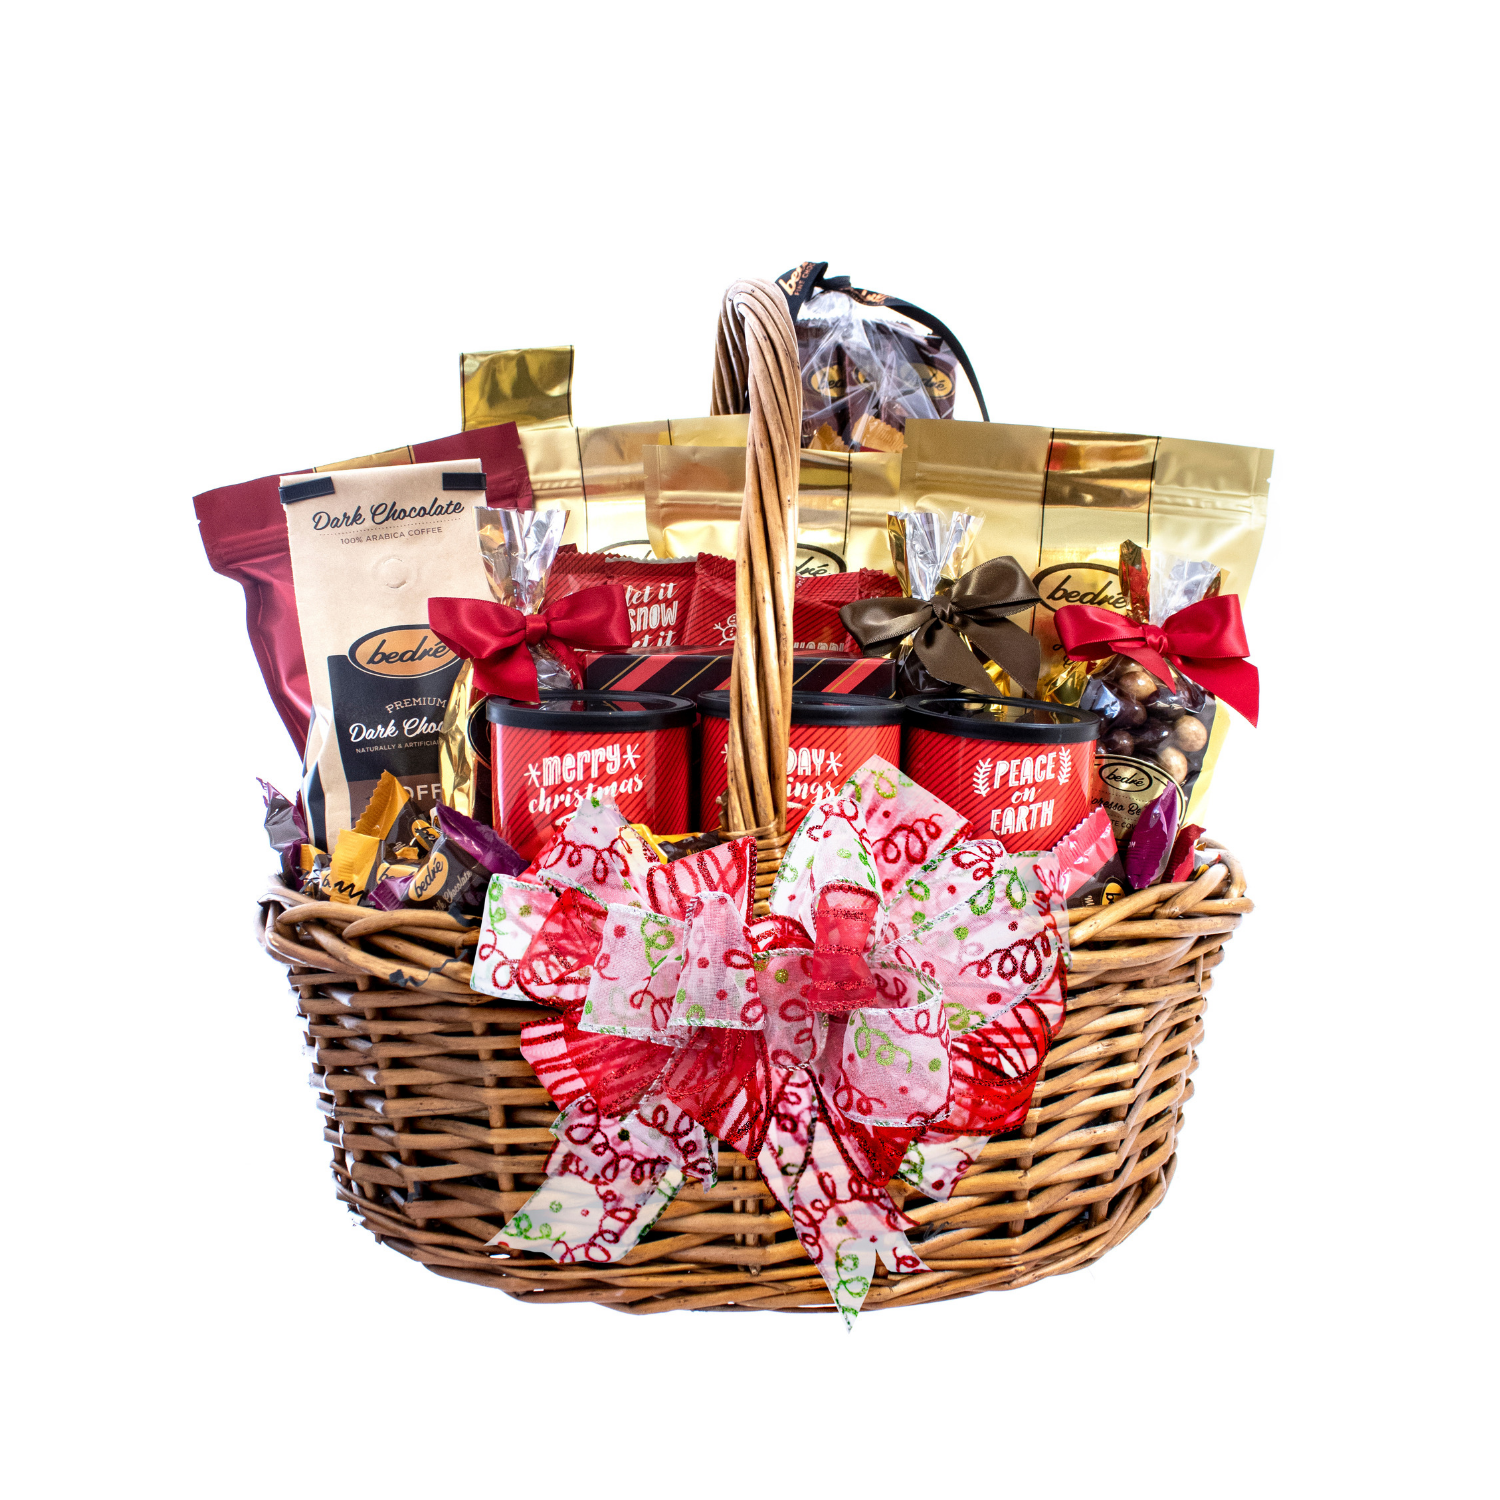 Gift Baskets & Boxes - Bedré Fine Chocolate